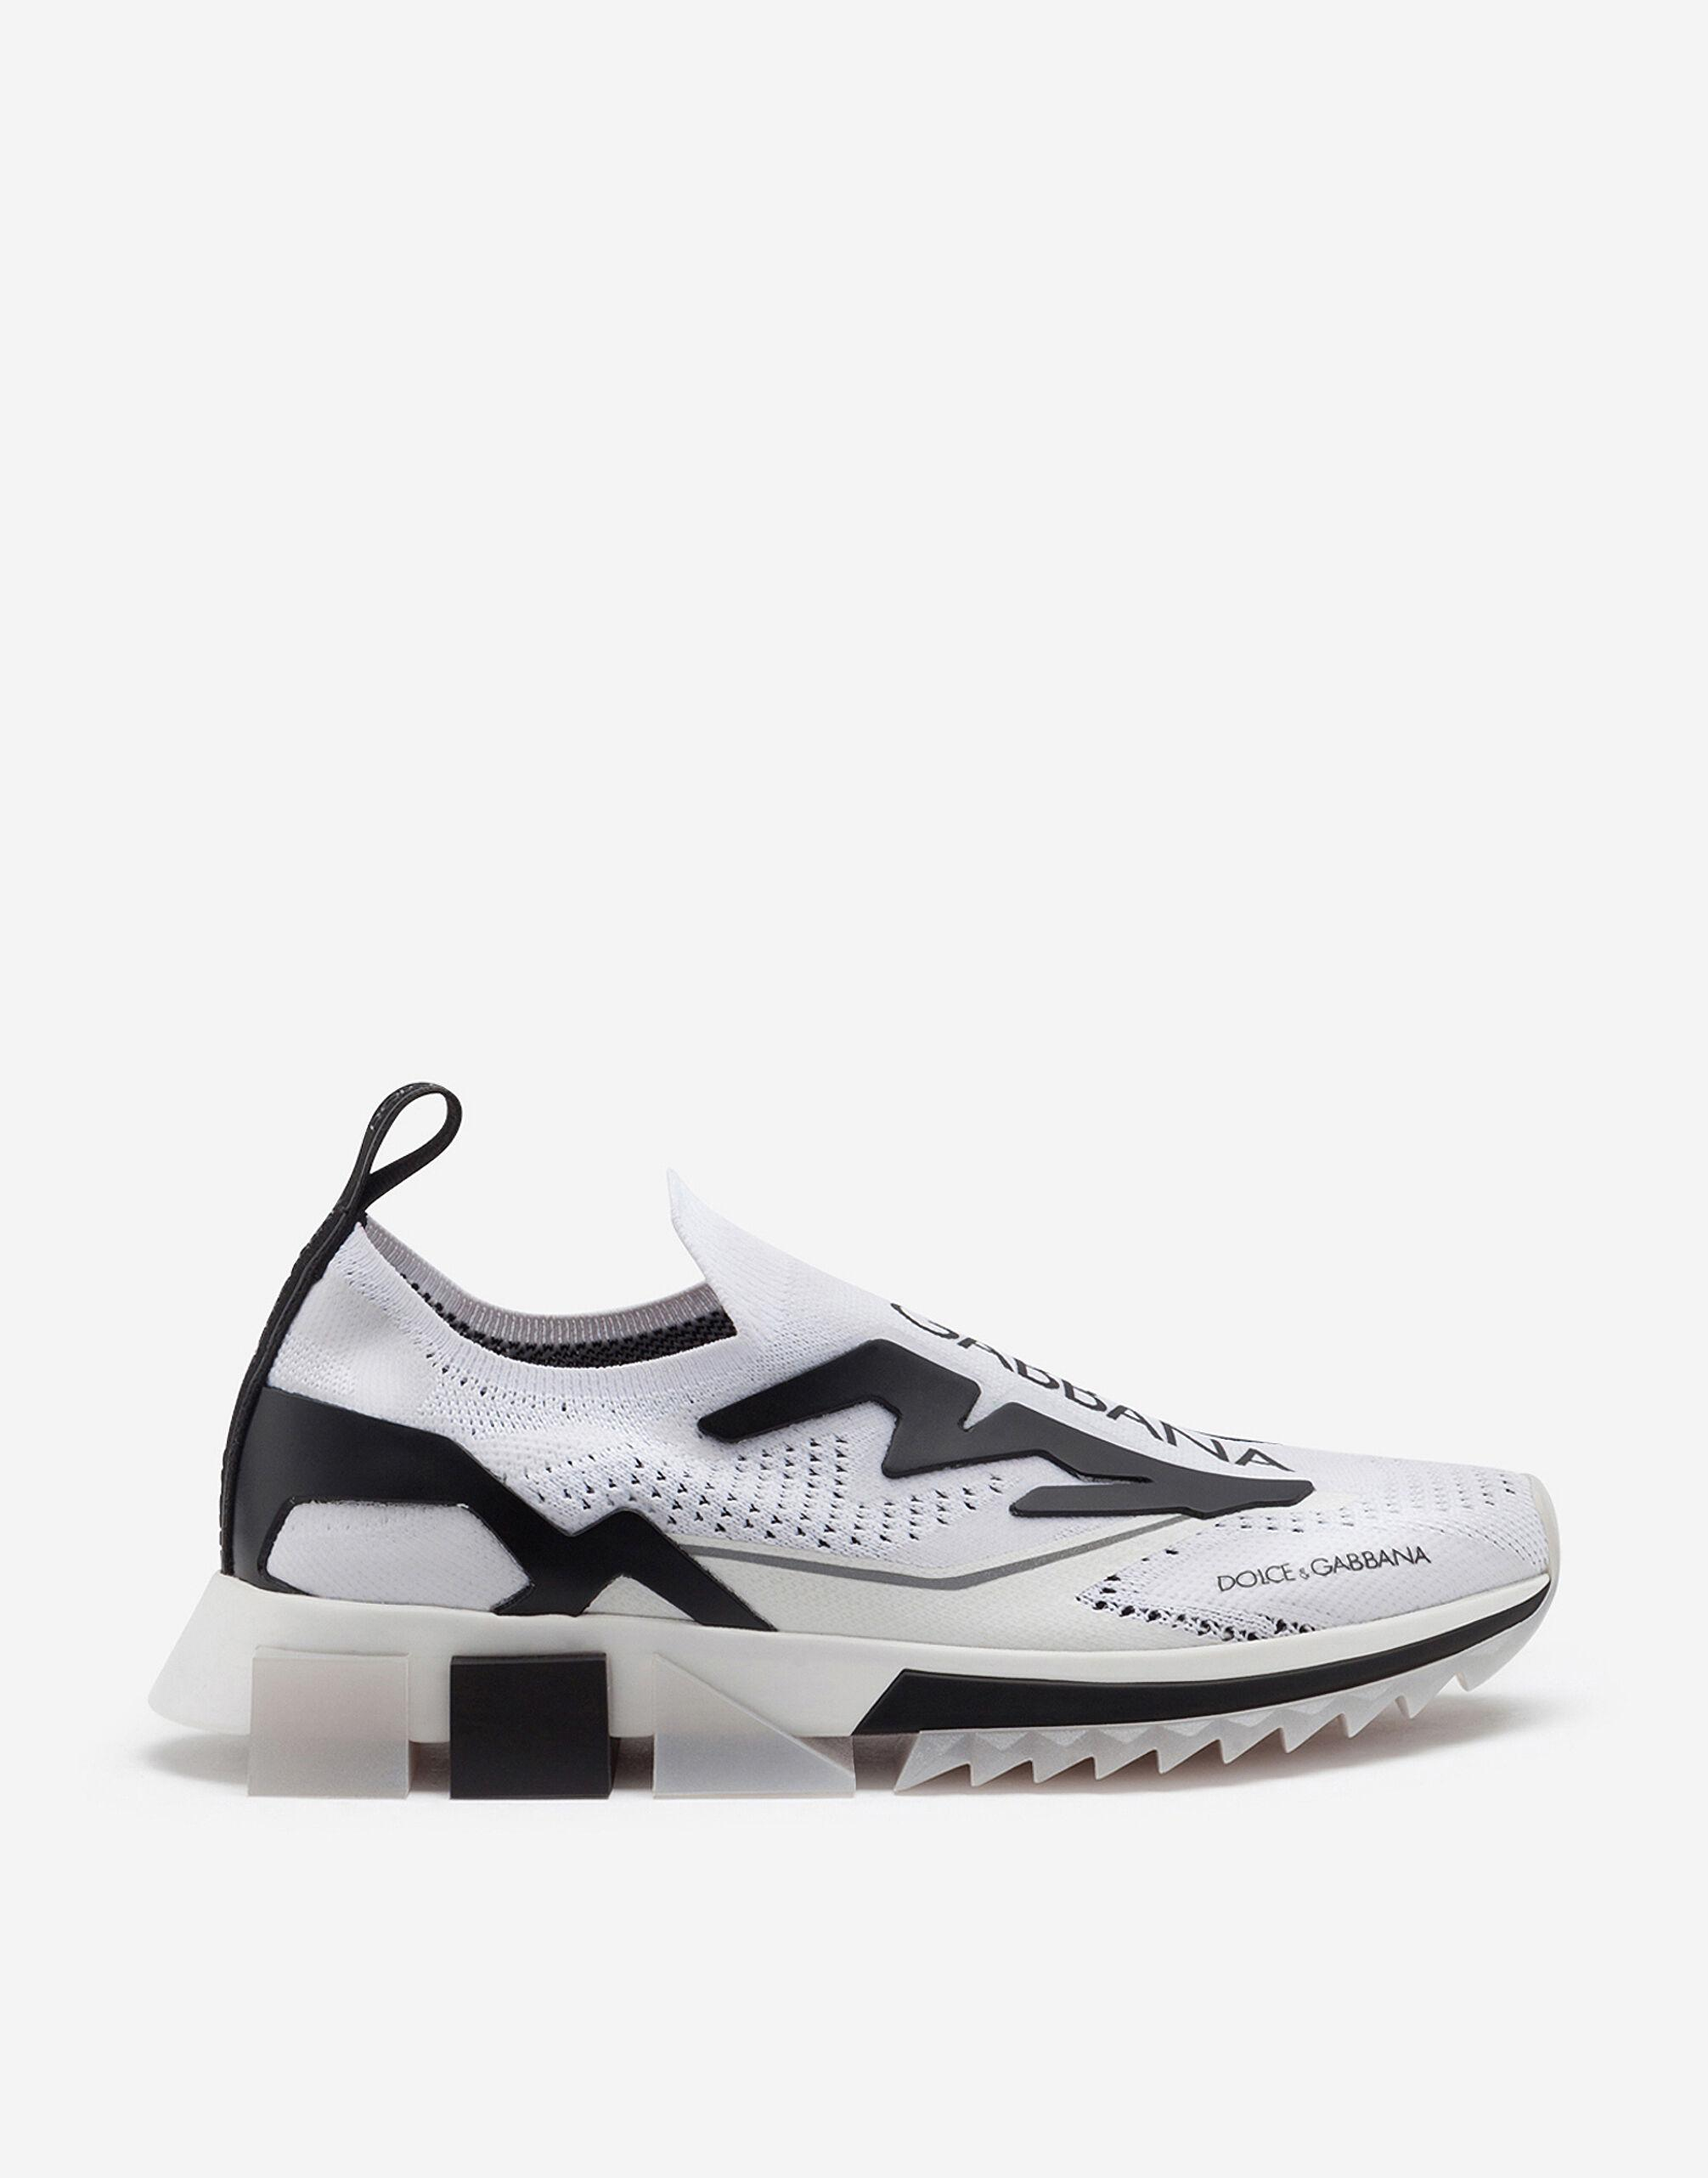 Sorrento sneakers in stretch jersey with logo